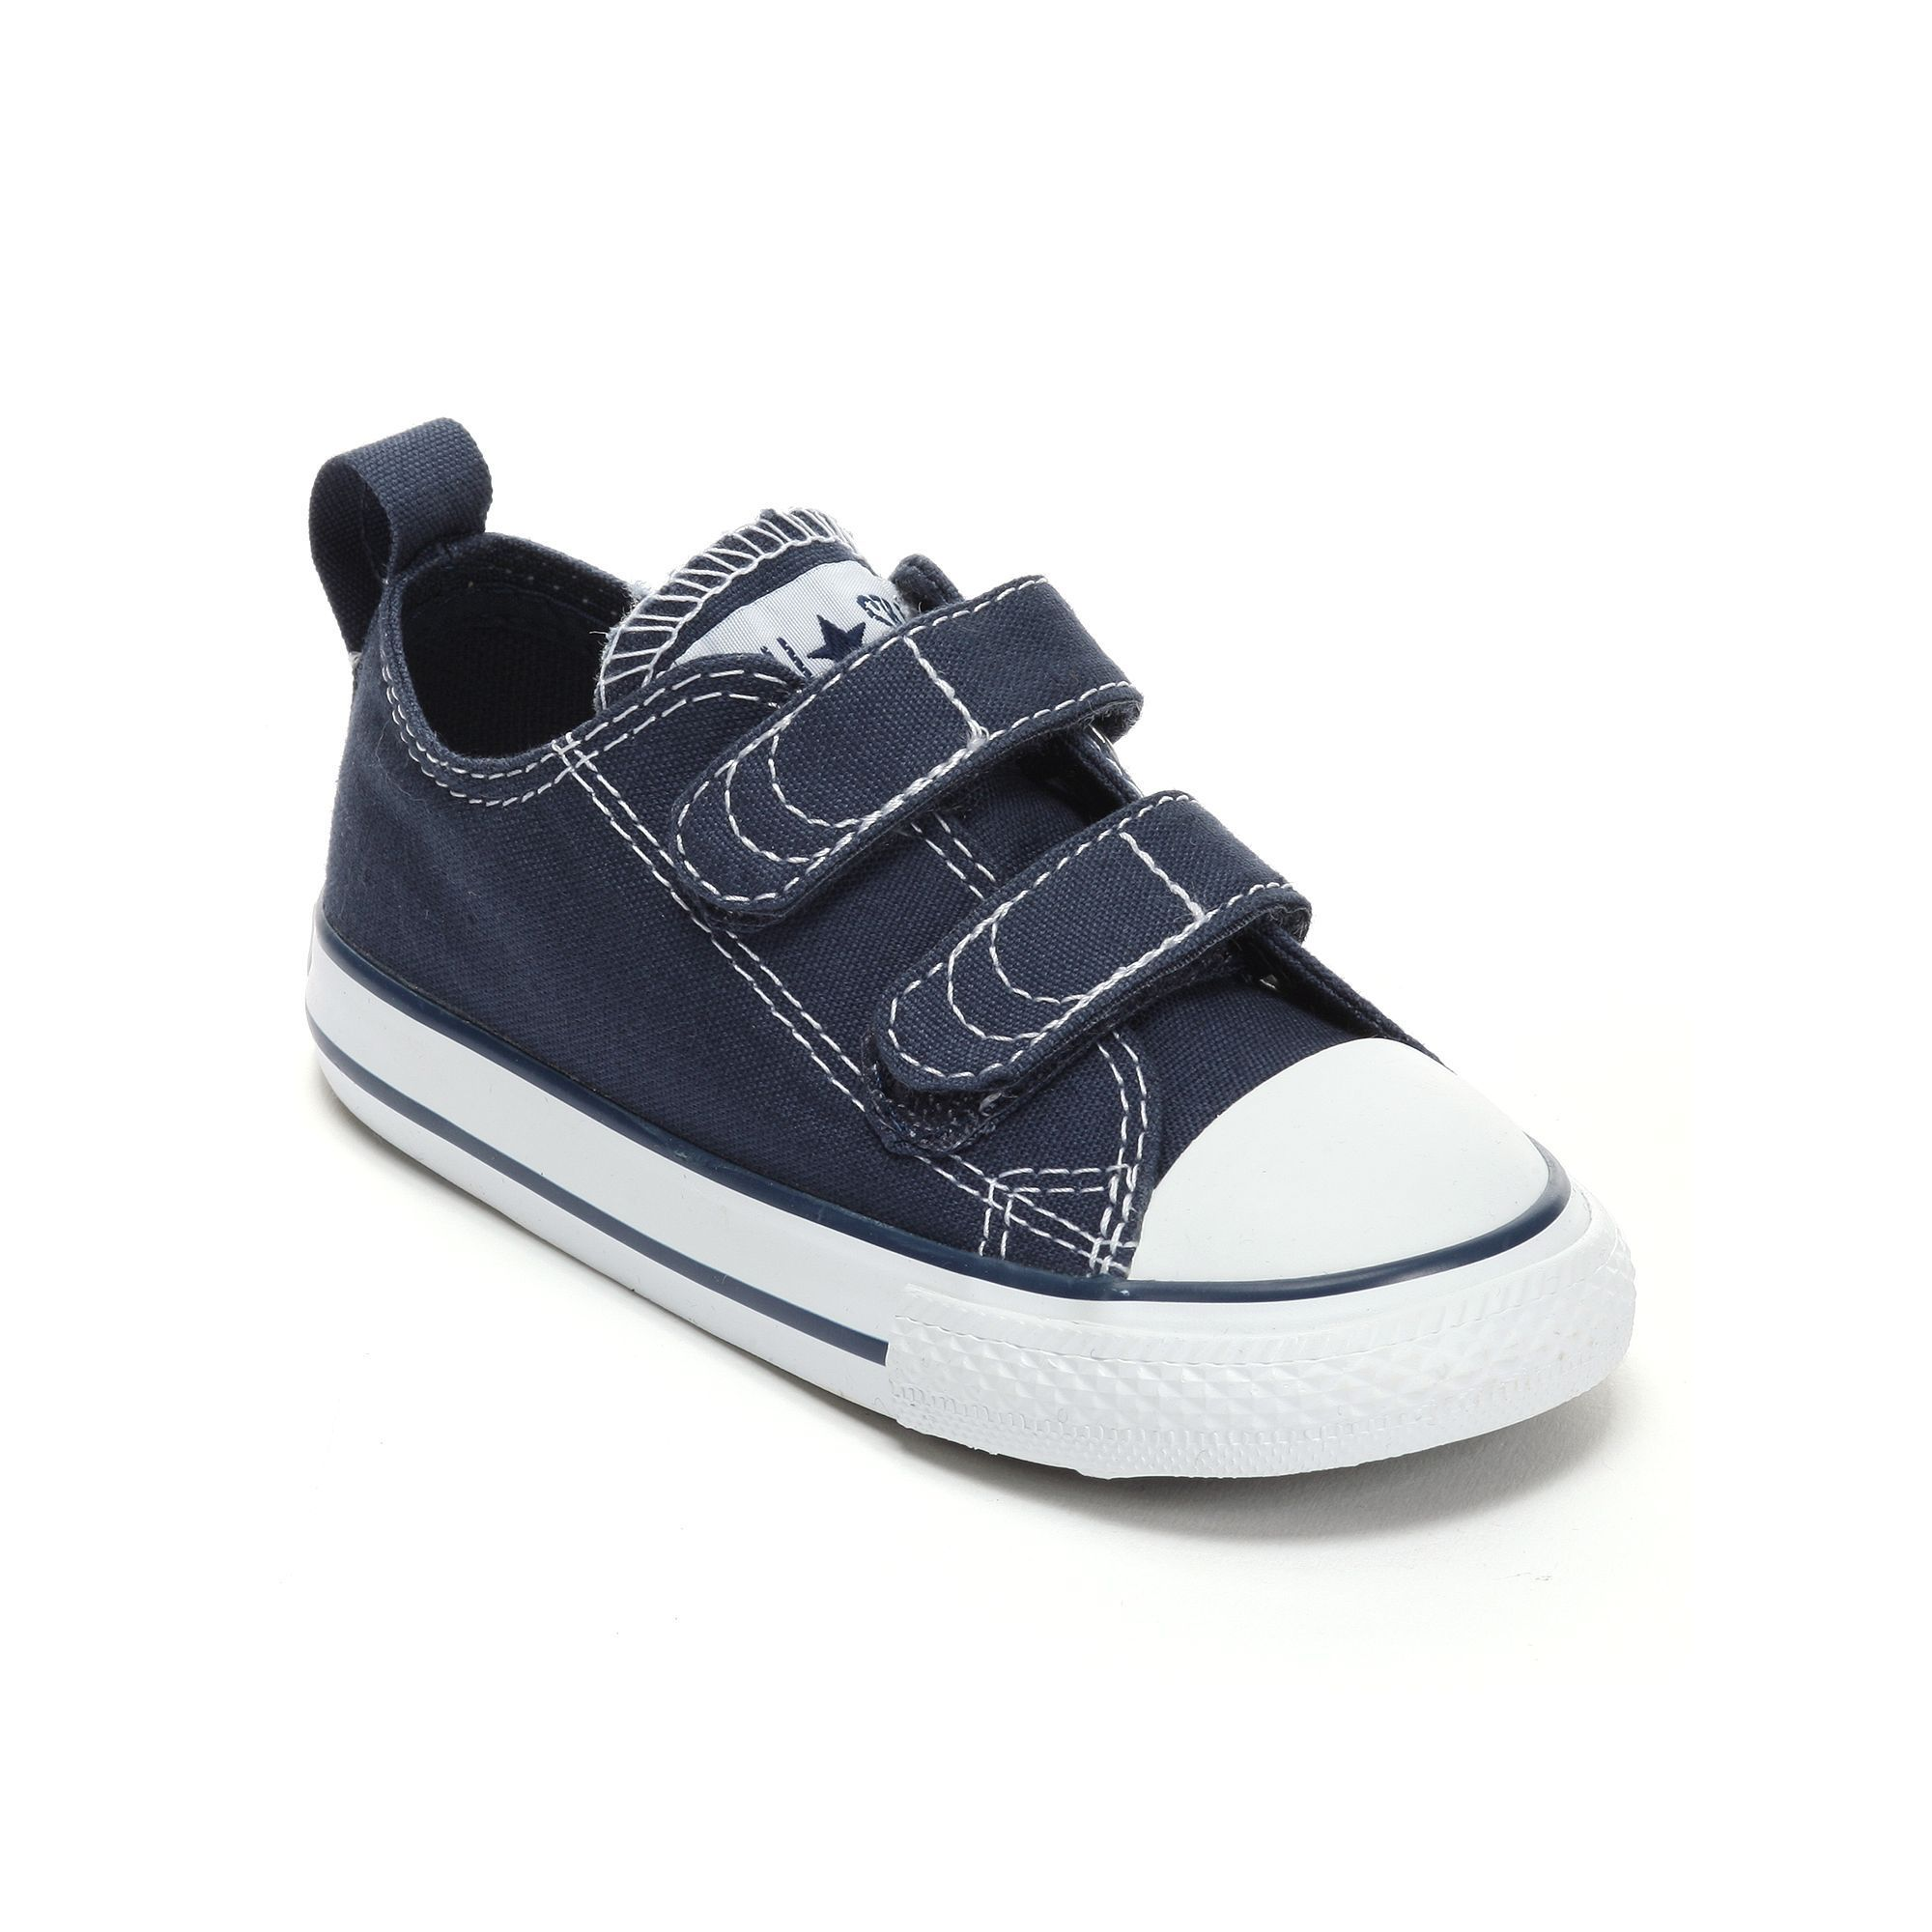 546cbbf06f82 Toddler Converse All Star Sneakers